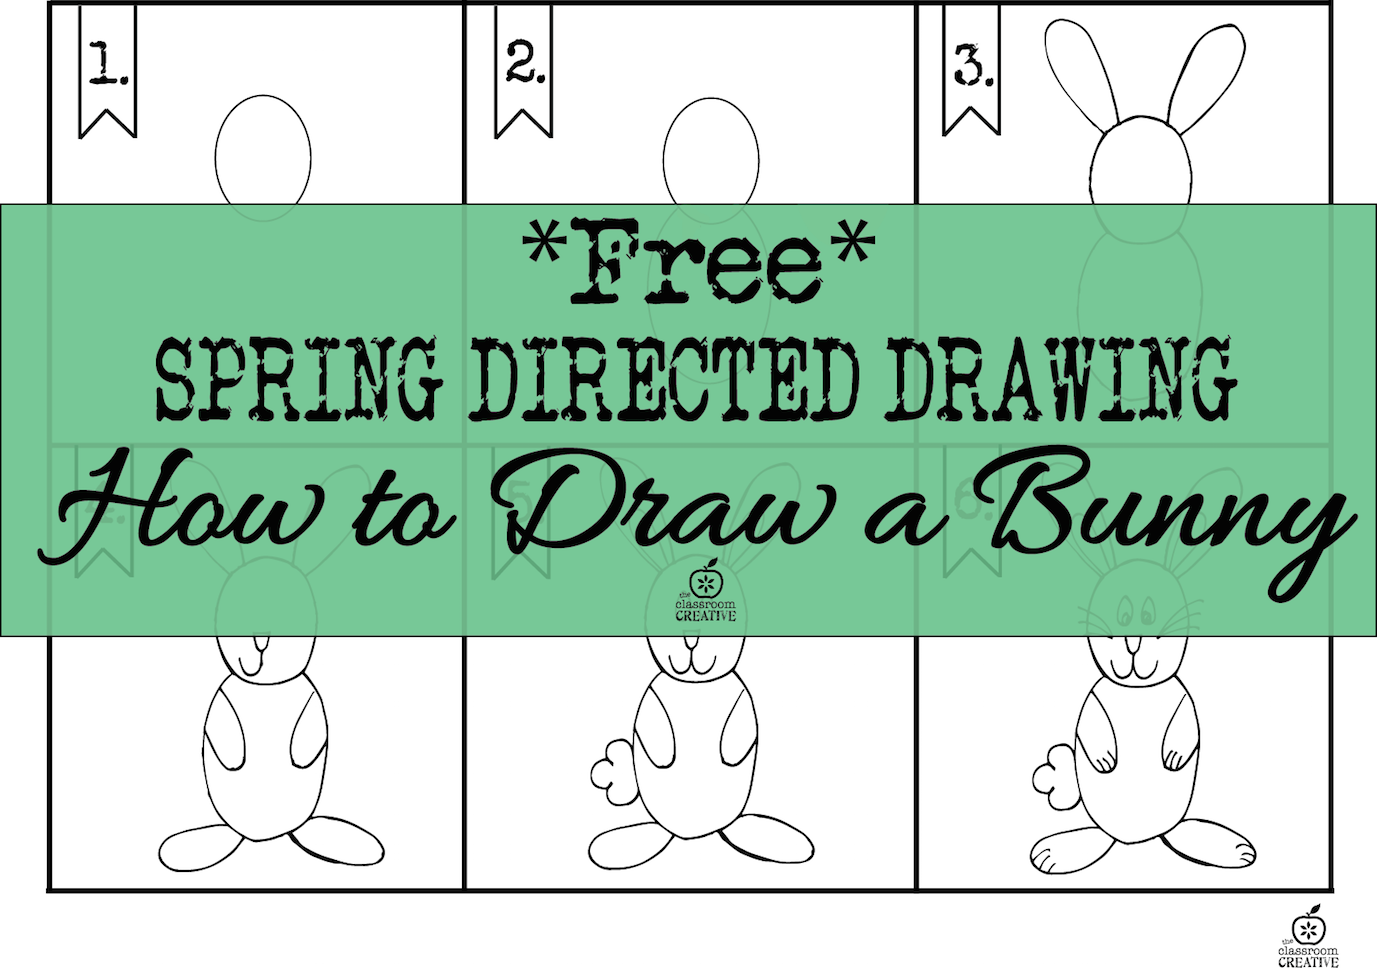 Grab Our How To Draw A Bunny Activity Here